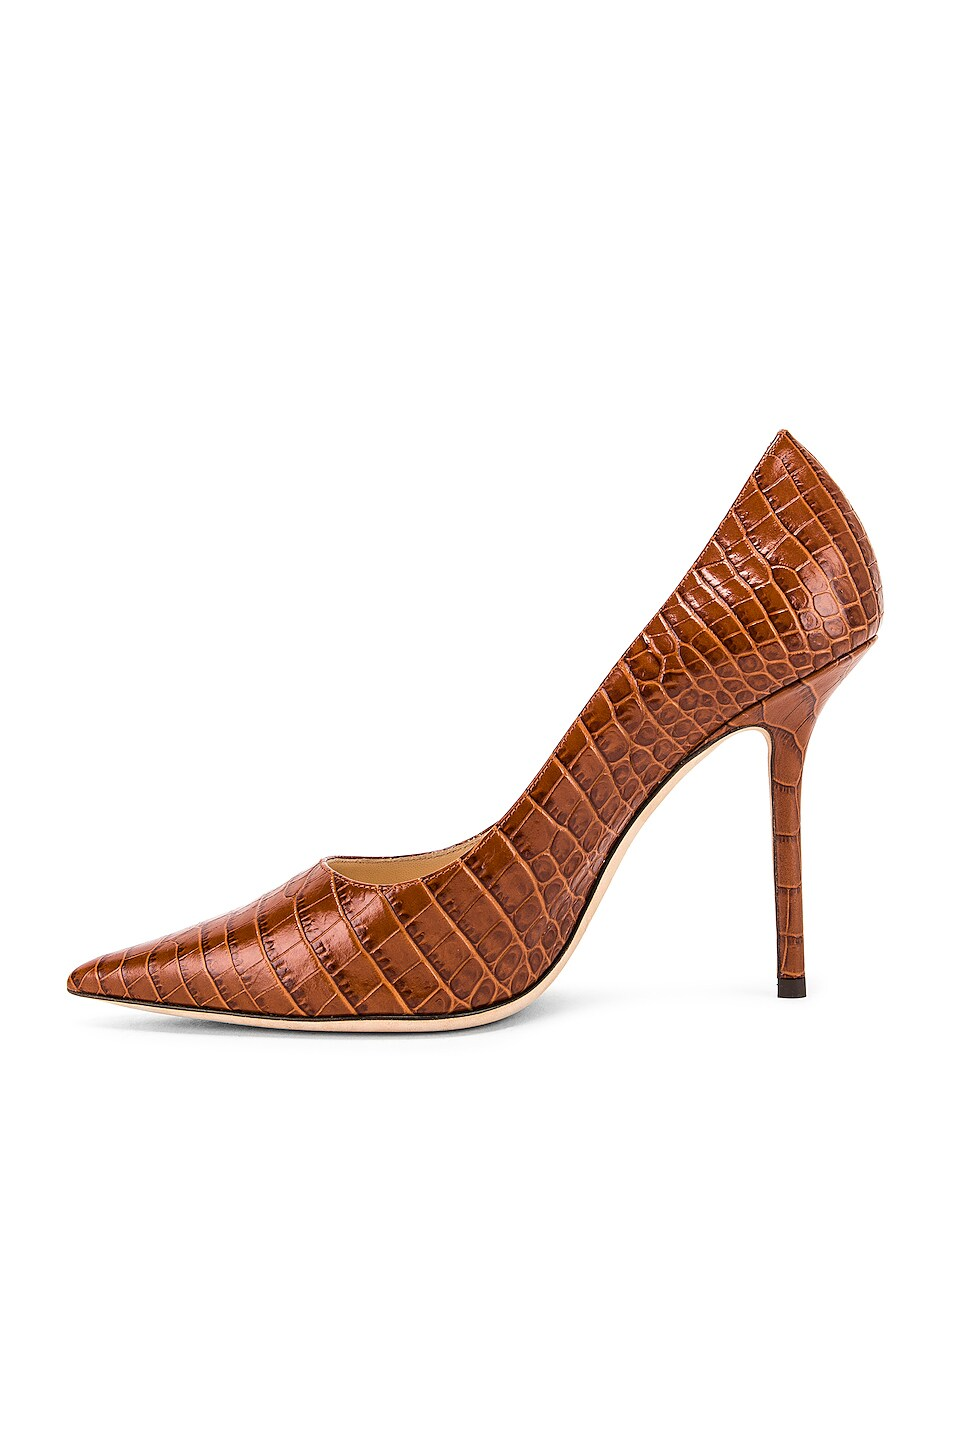 Image 5 of Jimmy Choo Croc Embossed Love 100 Heel in Cuoio